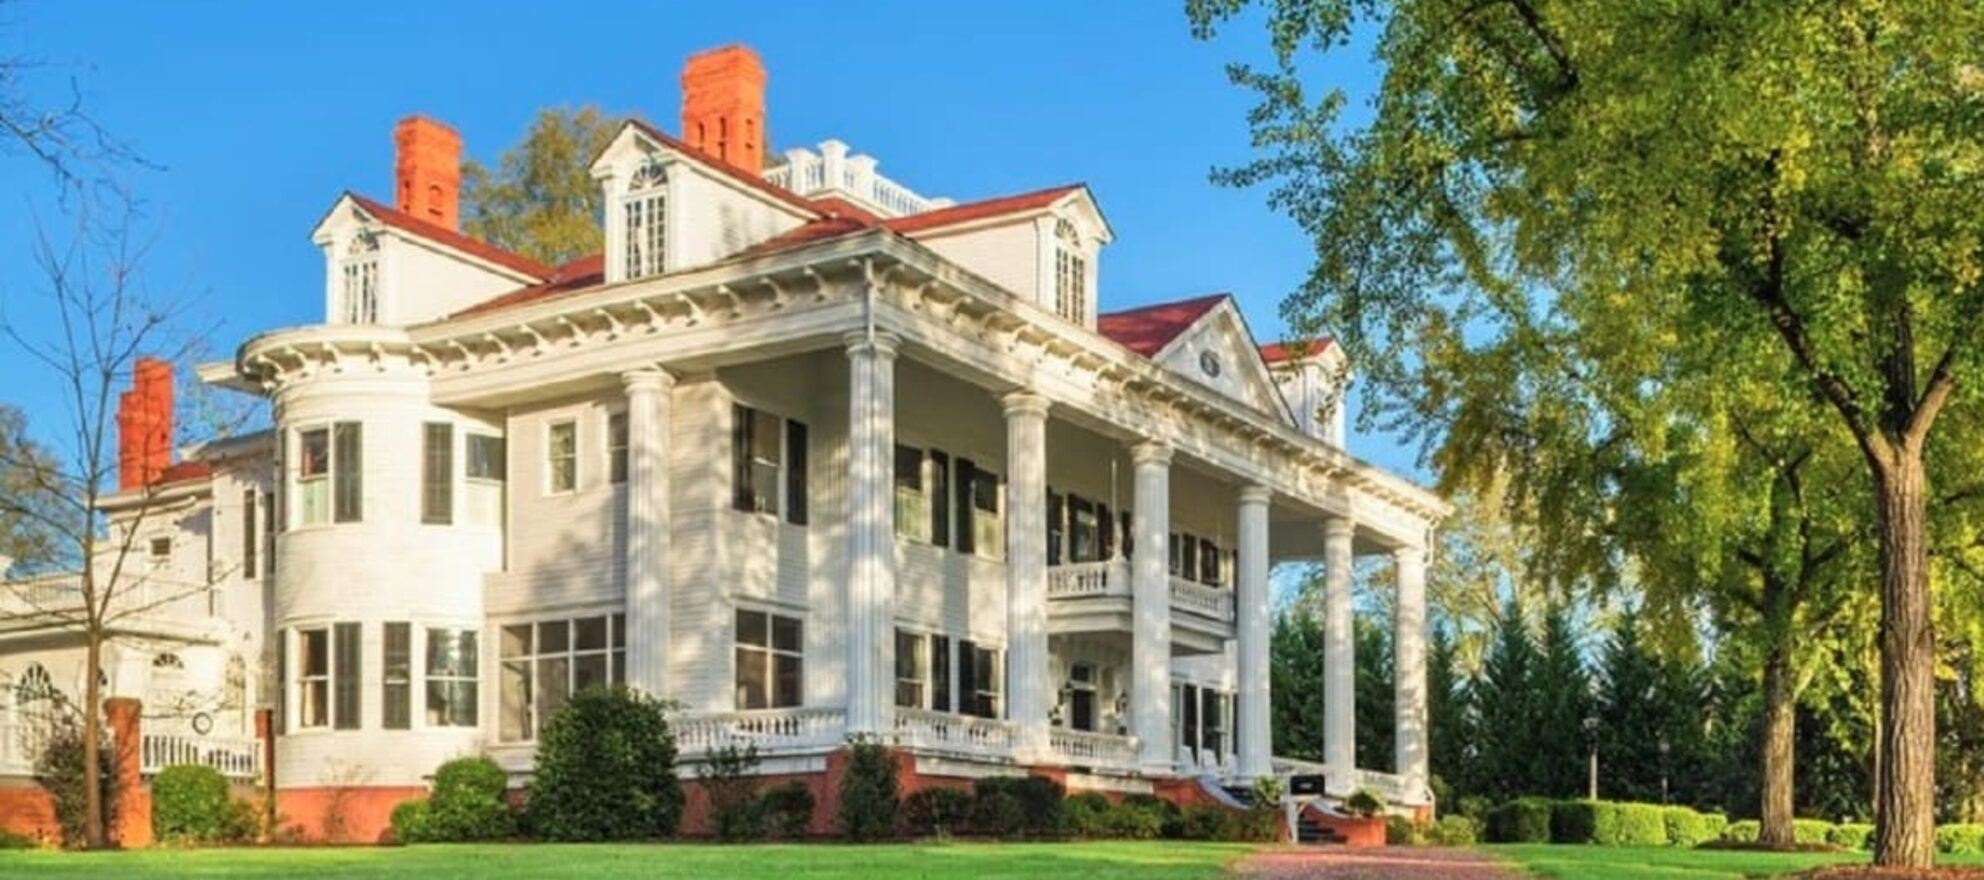 The 'Gone With The Wind' house is going up for auction